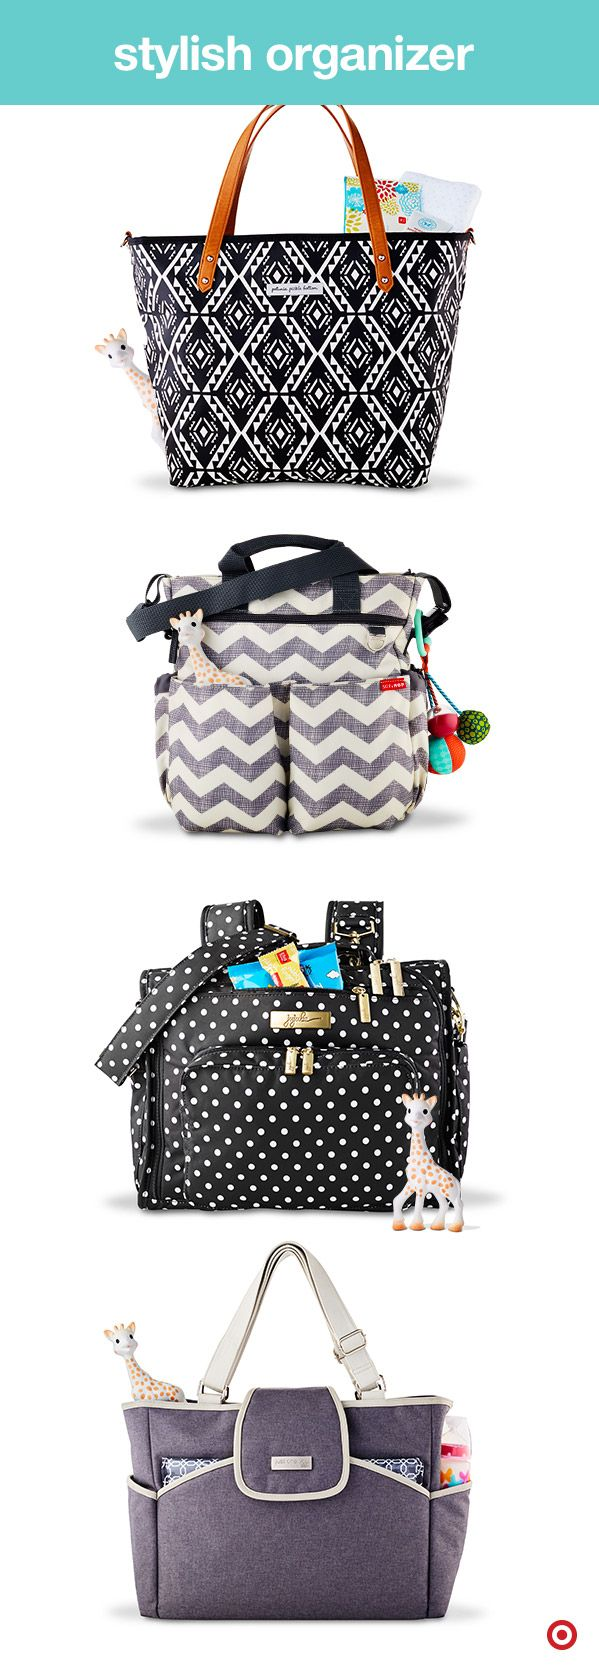 Fashionable and functional, diaper bags come in lots of styles with loads of options — like large pockets, baby bottle holders, zip-out changing pads and more. Plus, they come in a style for everyone, like totes, backpacks, messenger bags and styles specifically for Dad. Choose a diaper bag that fits your style, or get a couple to change out based on your activity and need. What's in your bag?